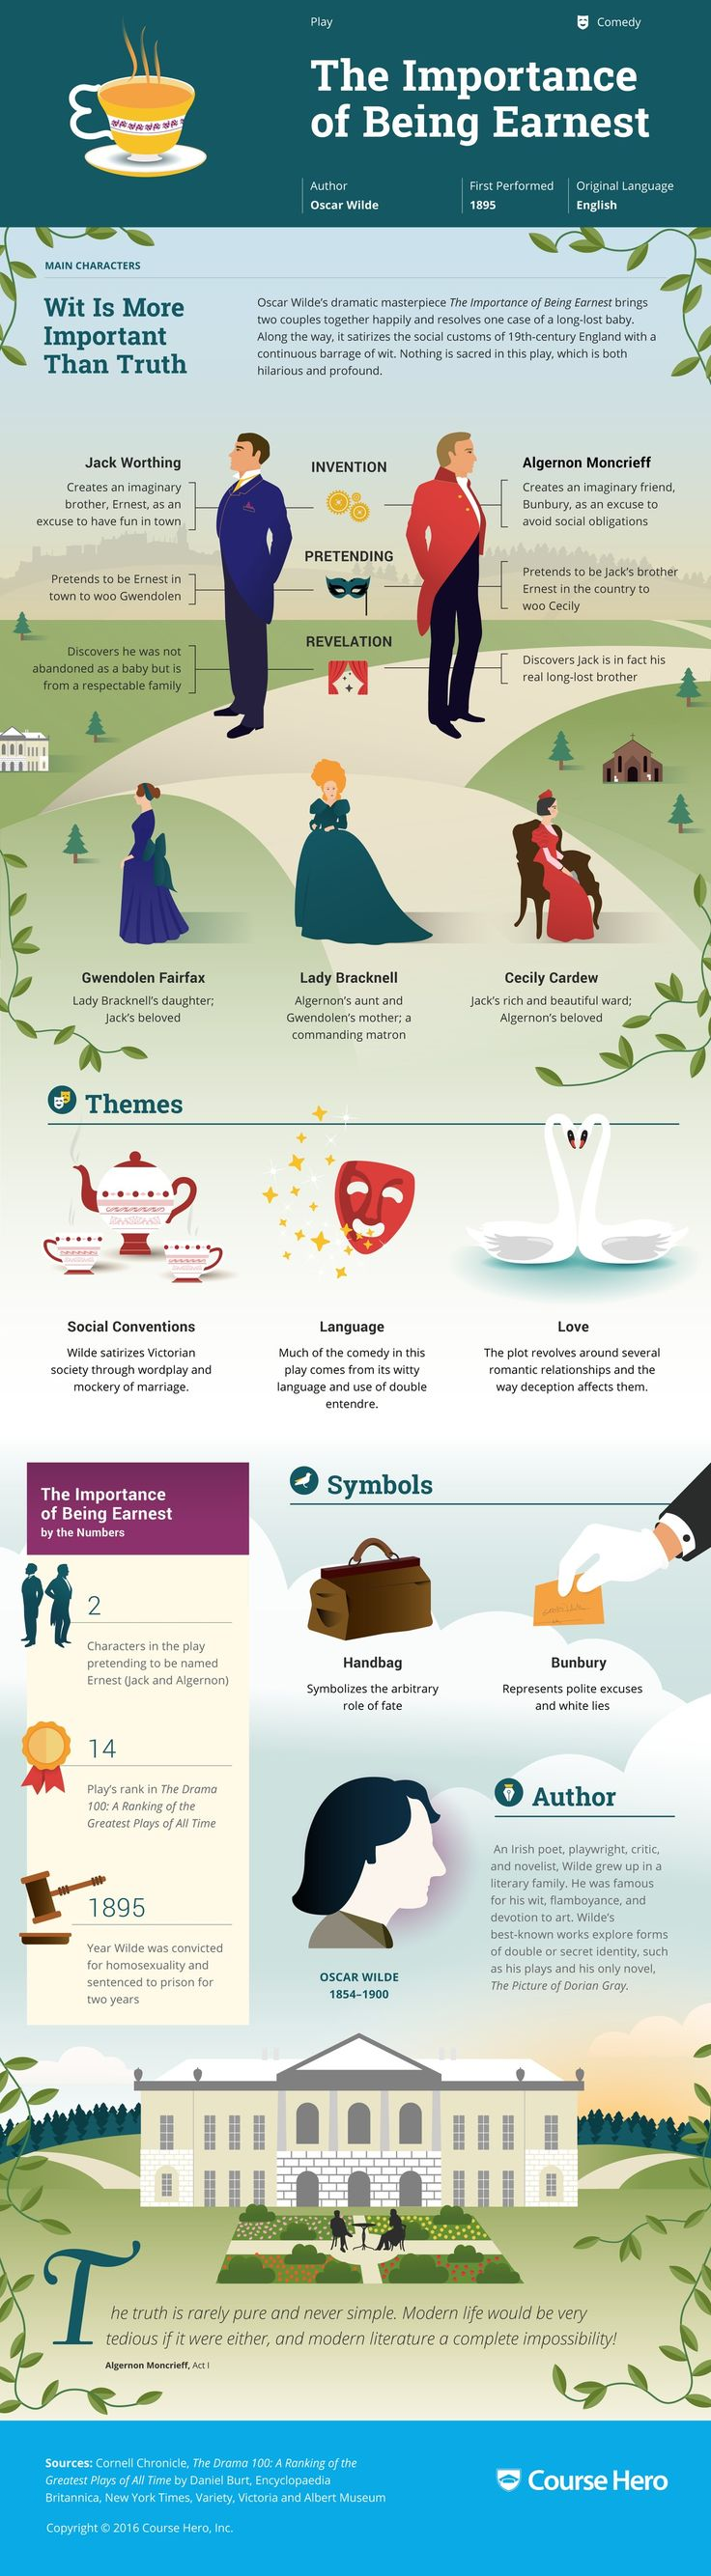 The Importance of Being Earnest infographic | Course Hero